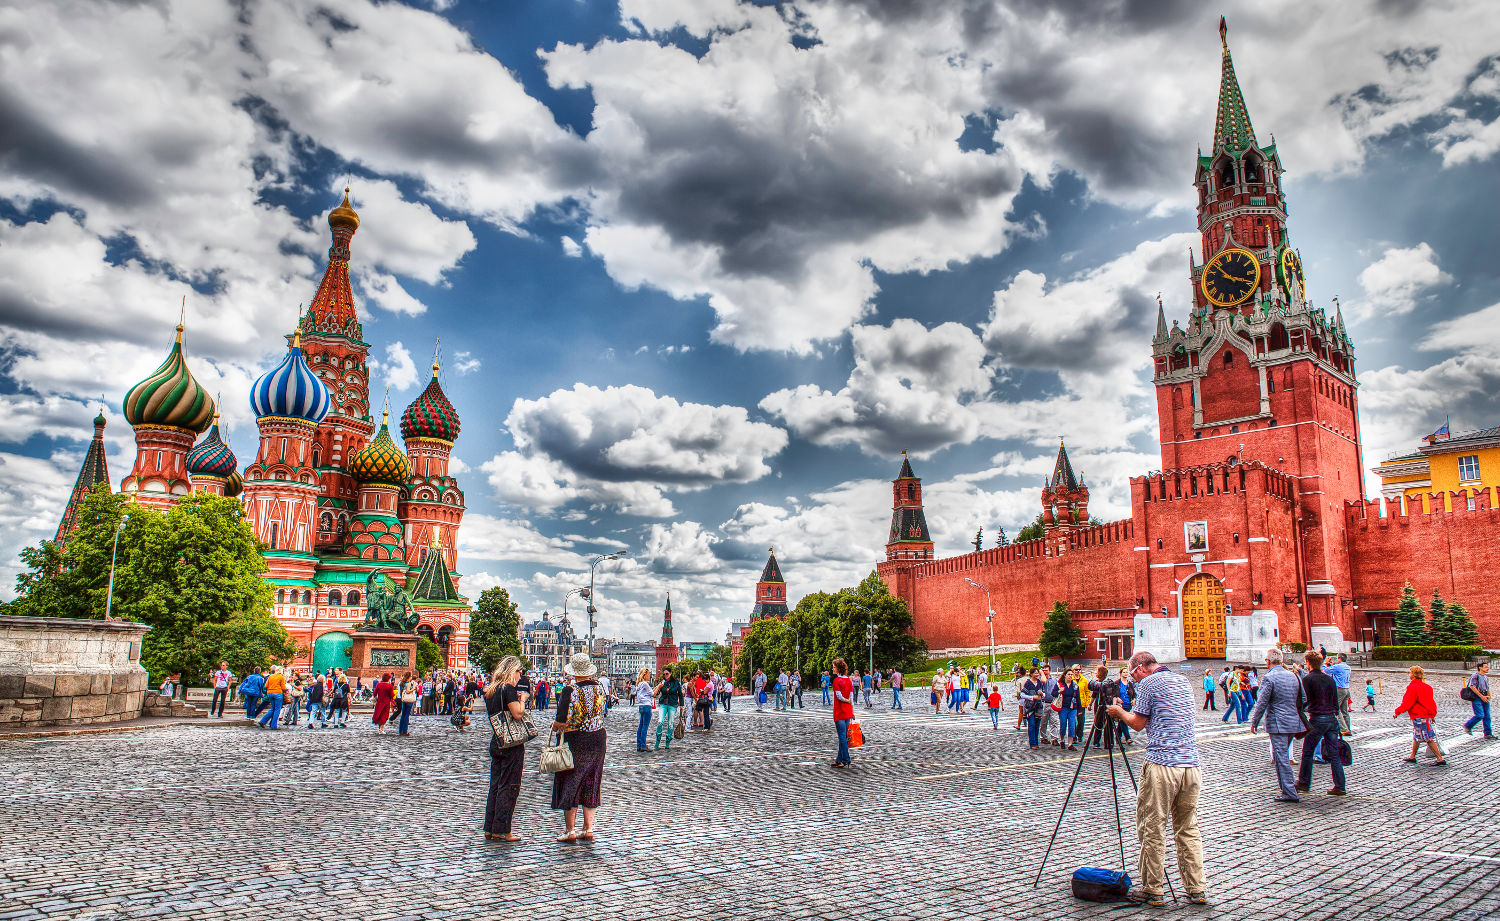 Roundtrip flight Vancouver - Moscow for $870 in JUL-OCT